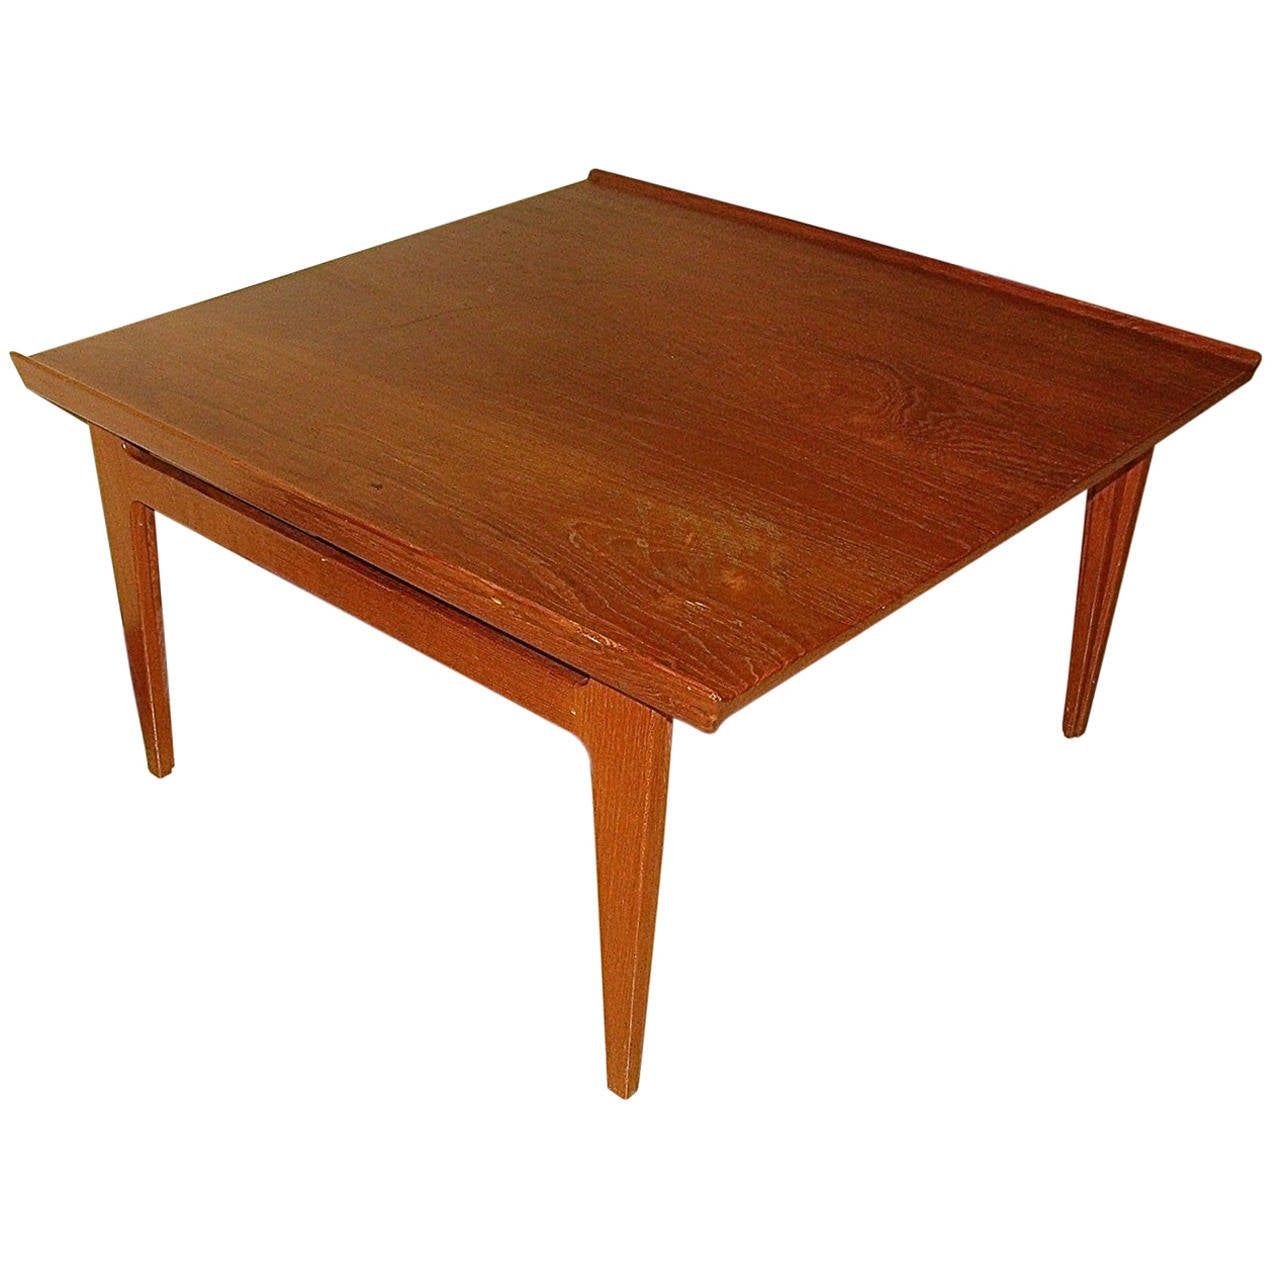 Finn juhl danish modern mid century coffee table at 1stdibs Mid century coffee tables